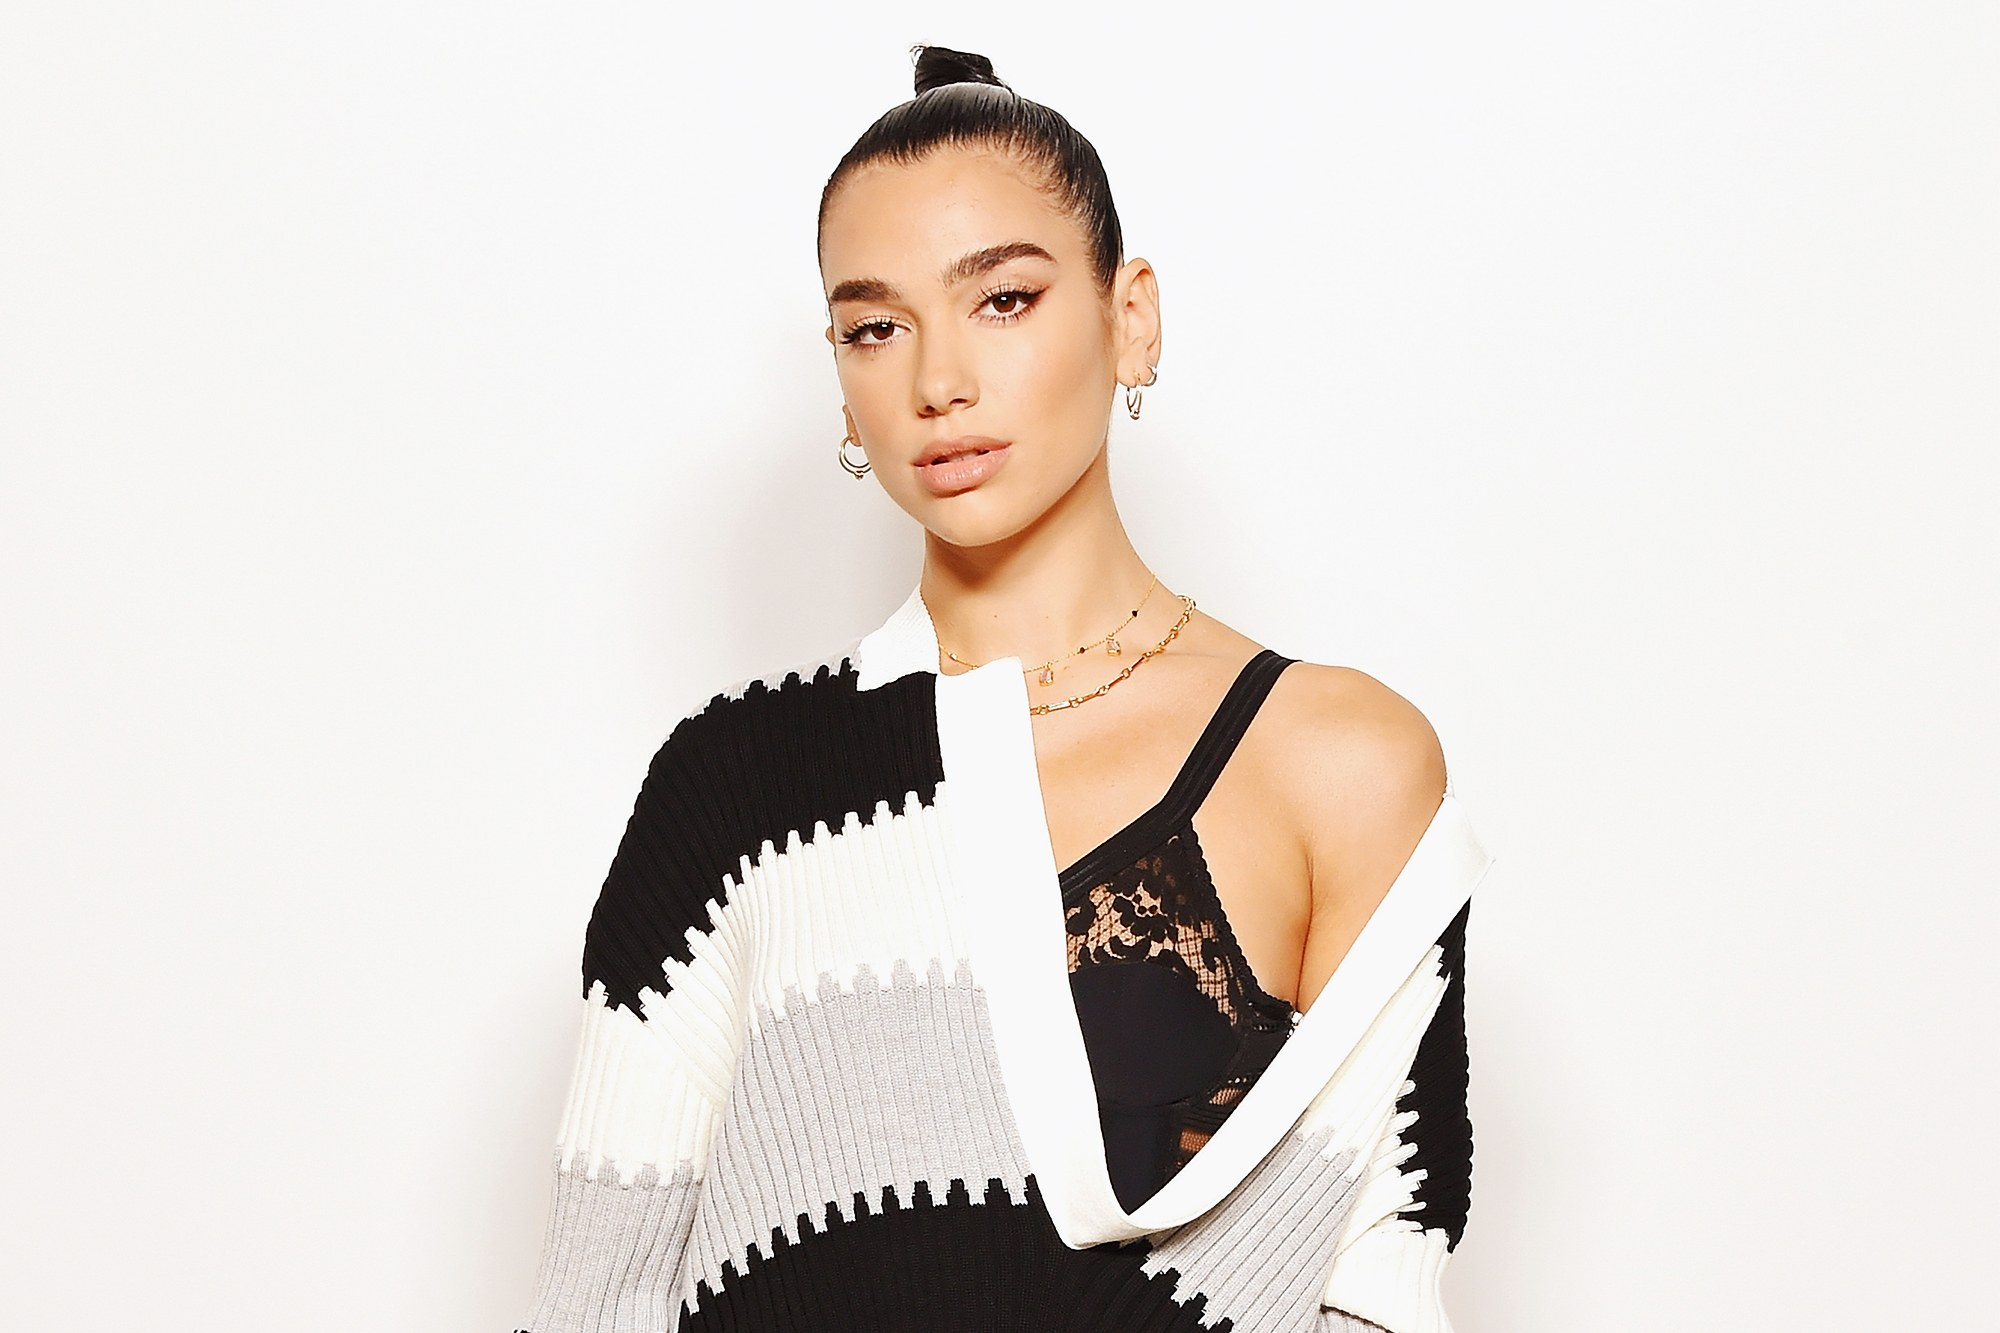 Hot Singer Dua Lipa - Dua Lipa Net Worth, Pics, Wallpapers, Career and Biography